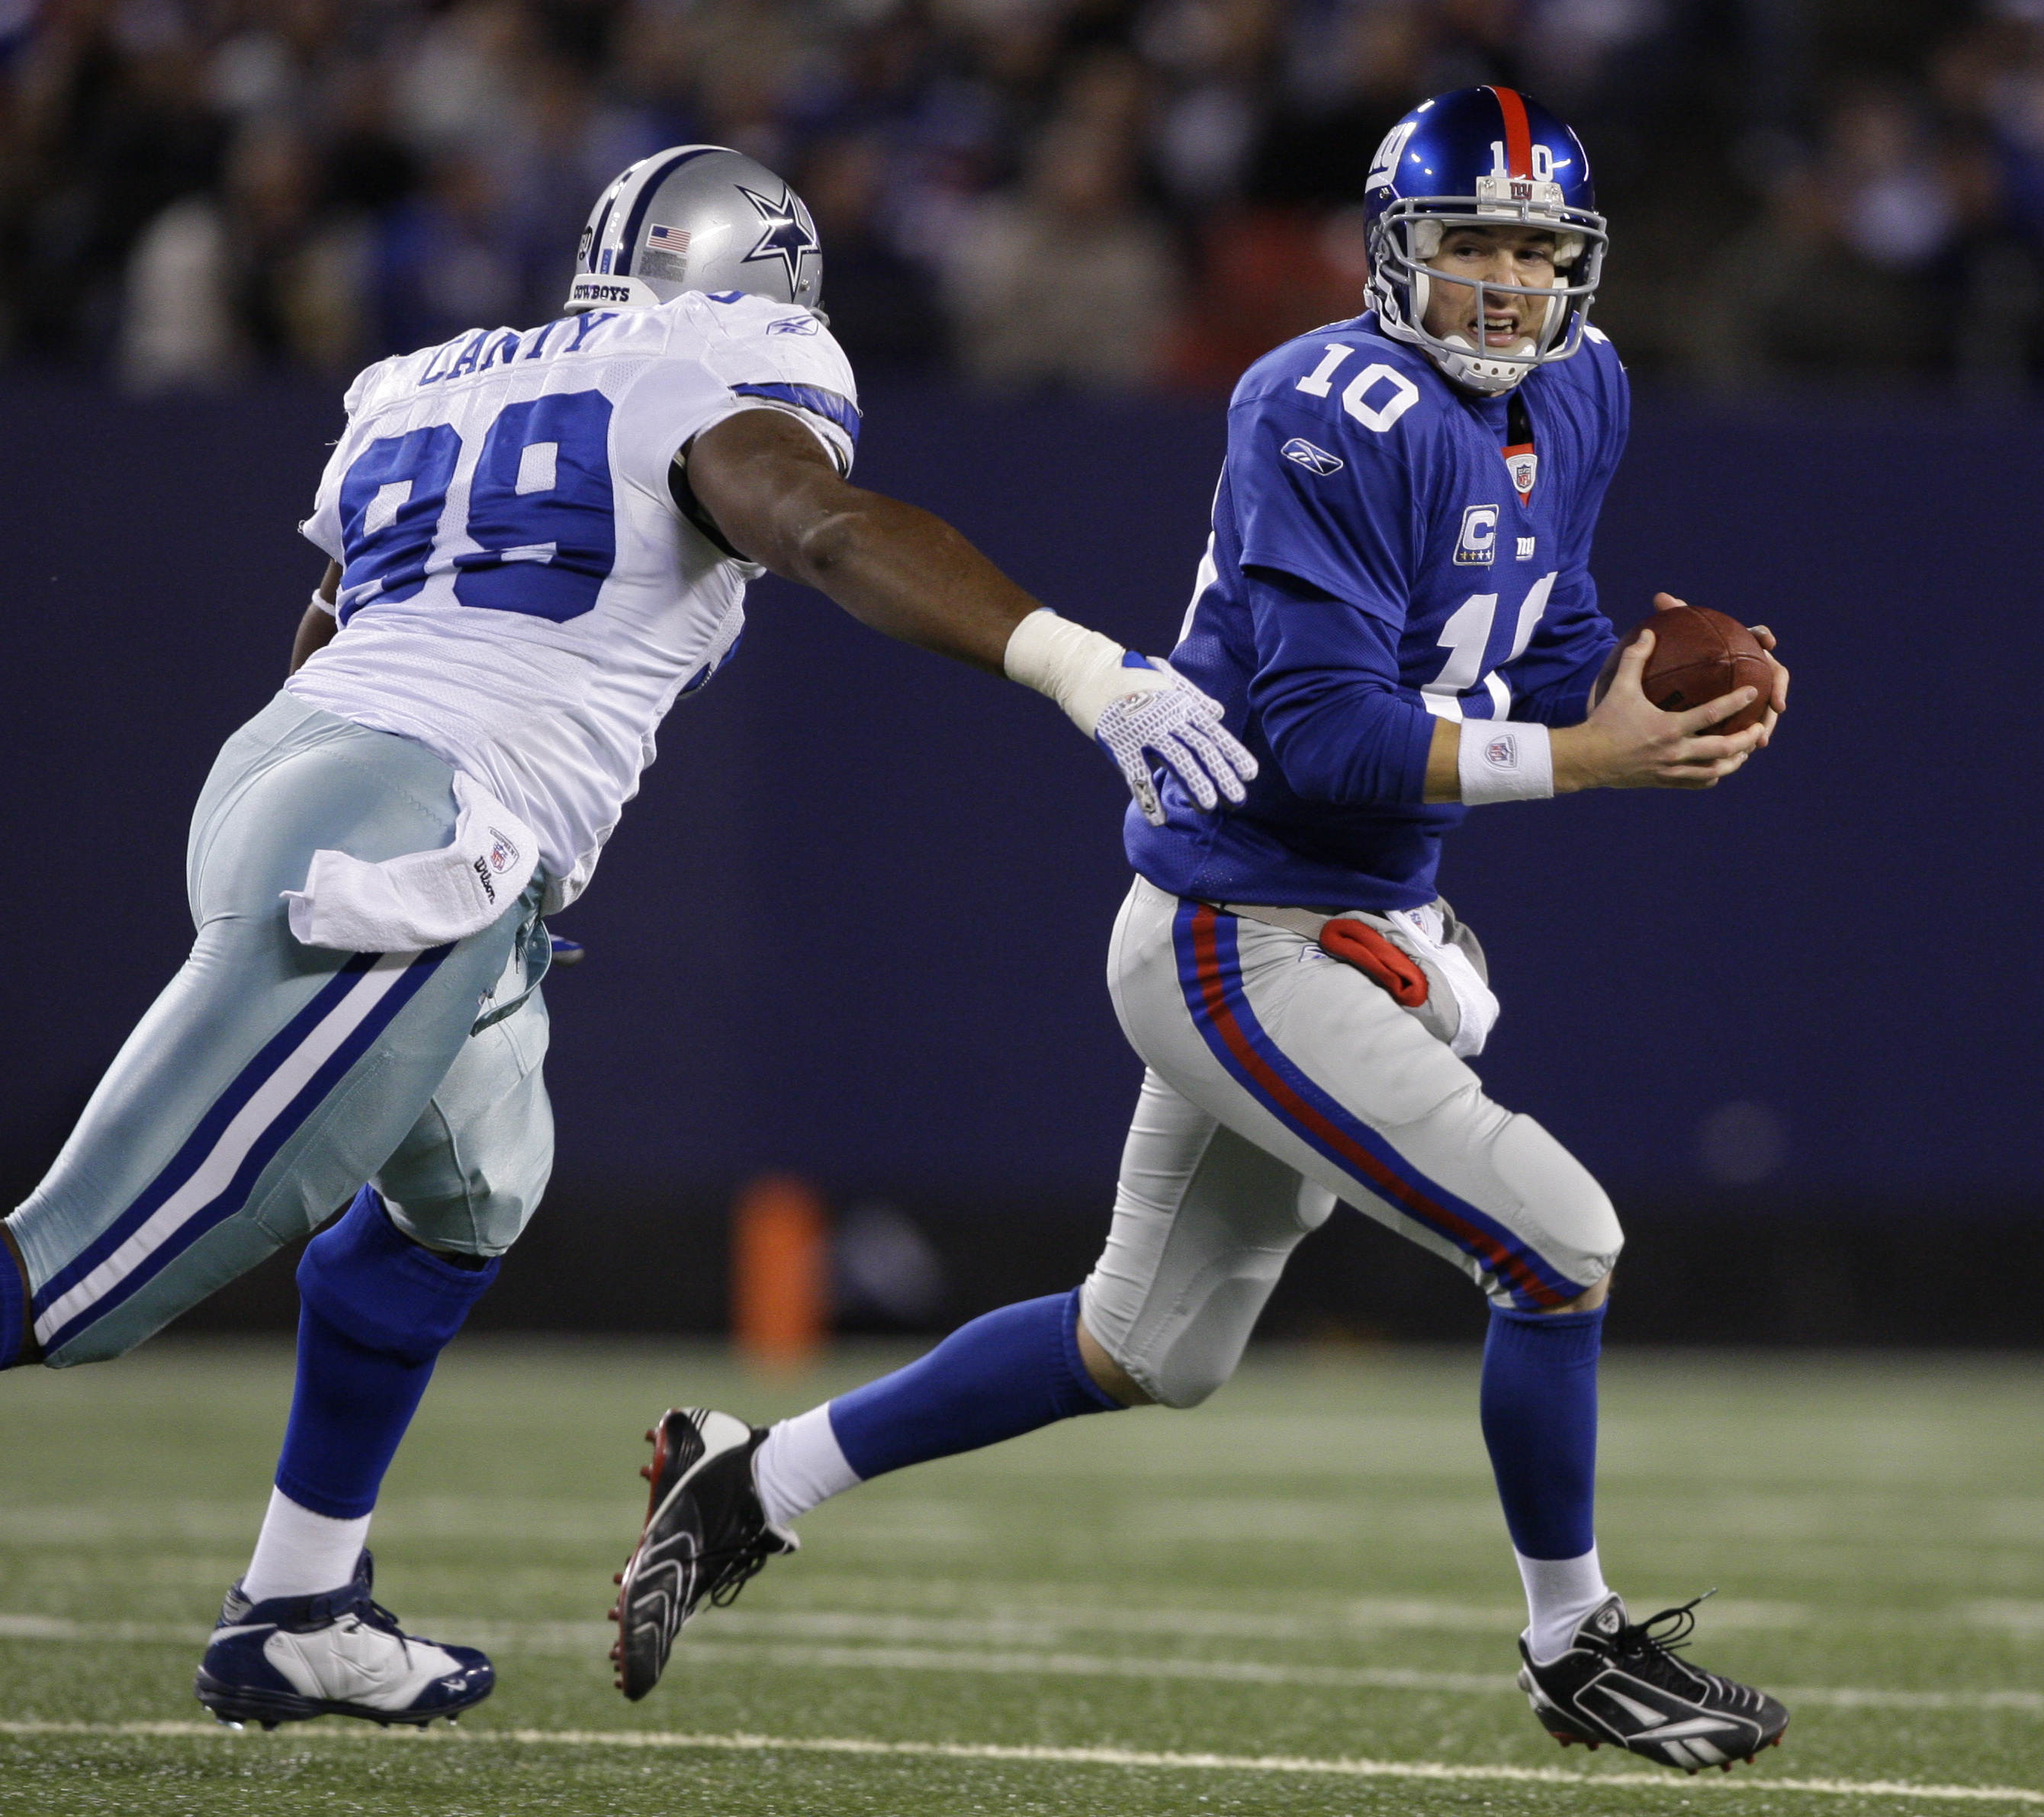 Football - NFL - Cowboys vs. Giants